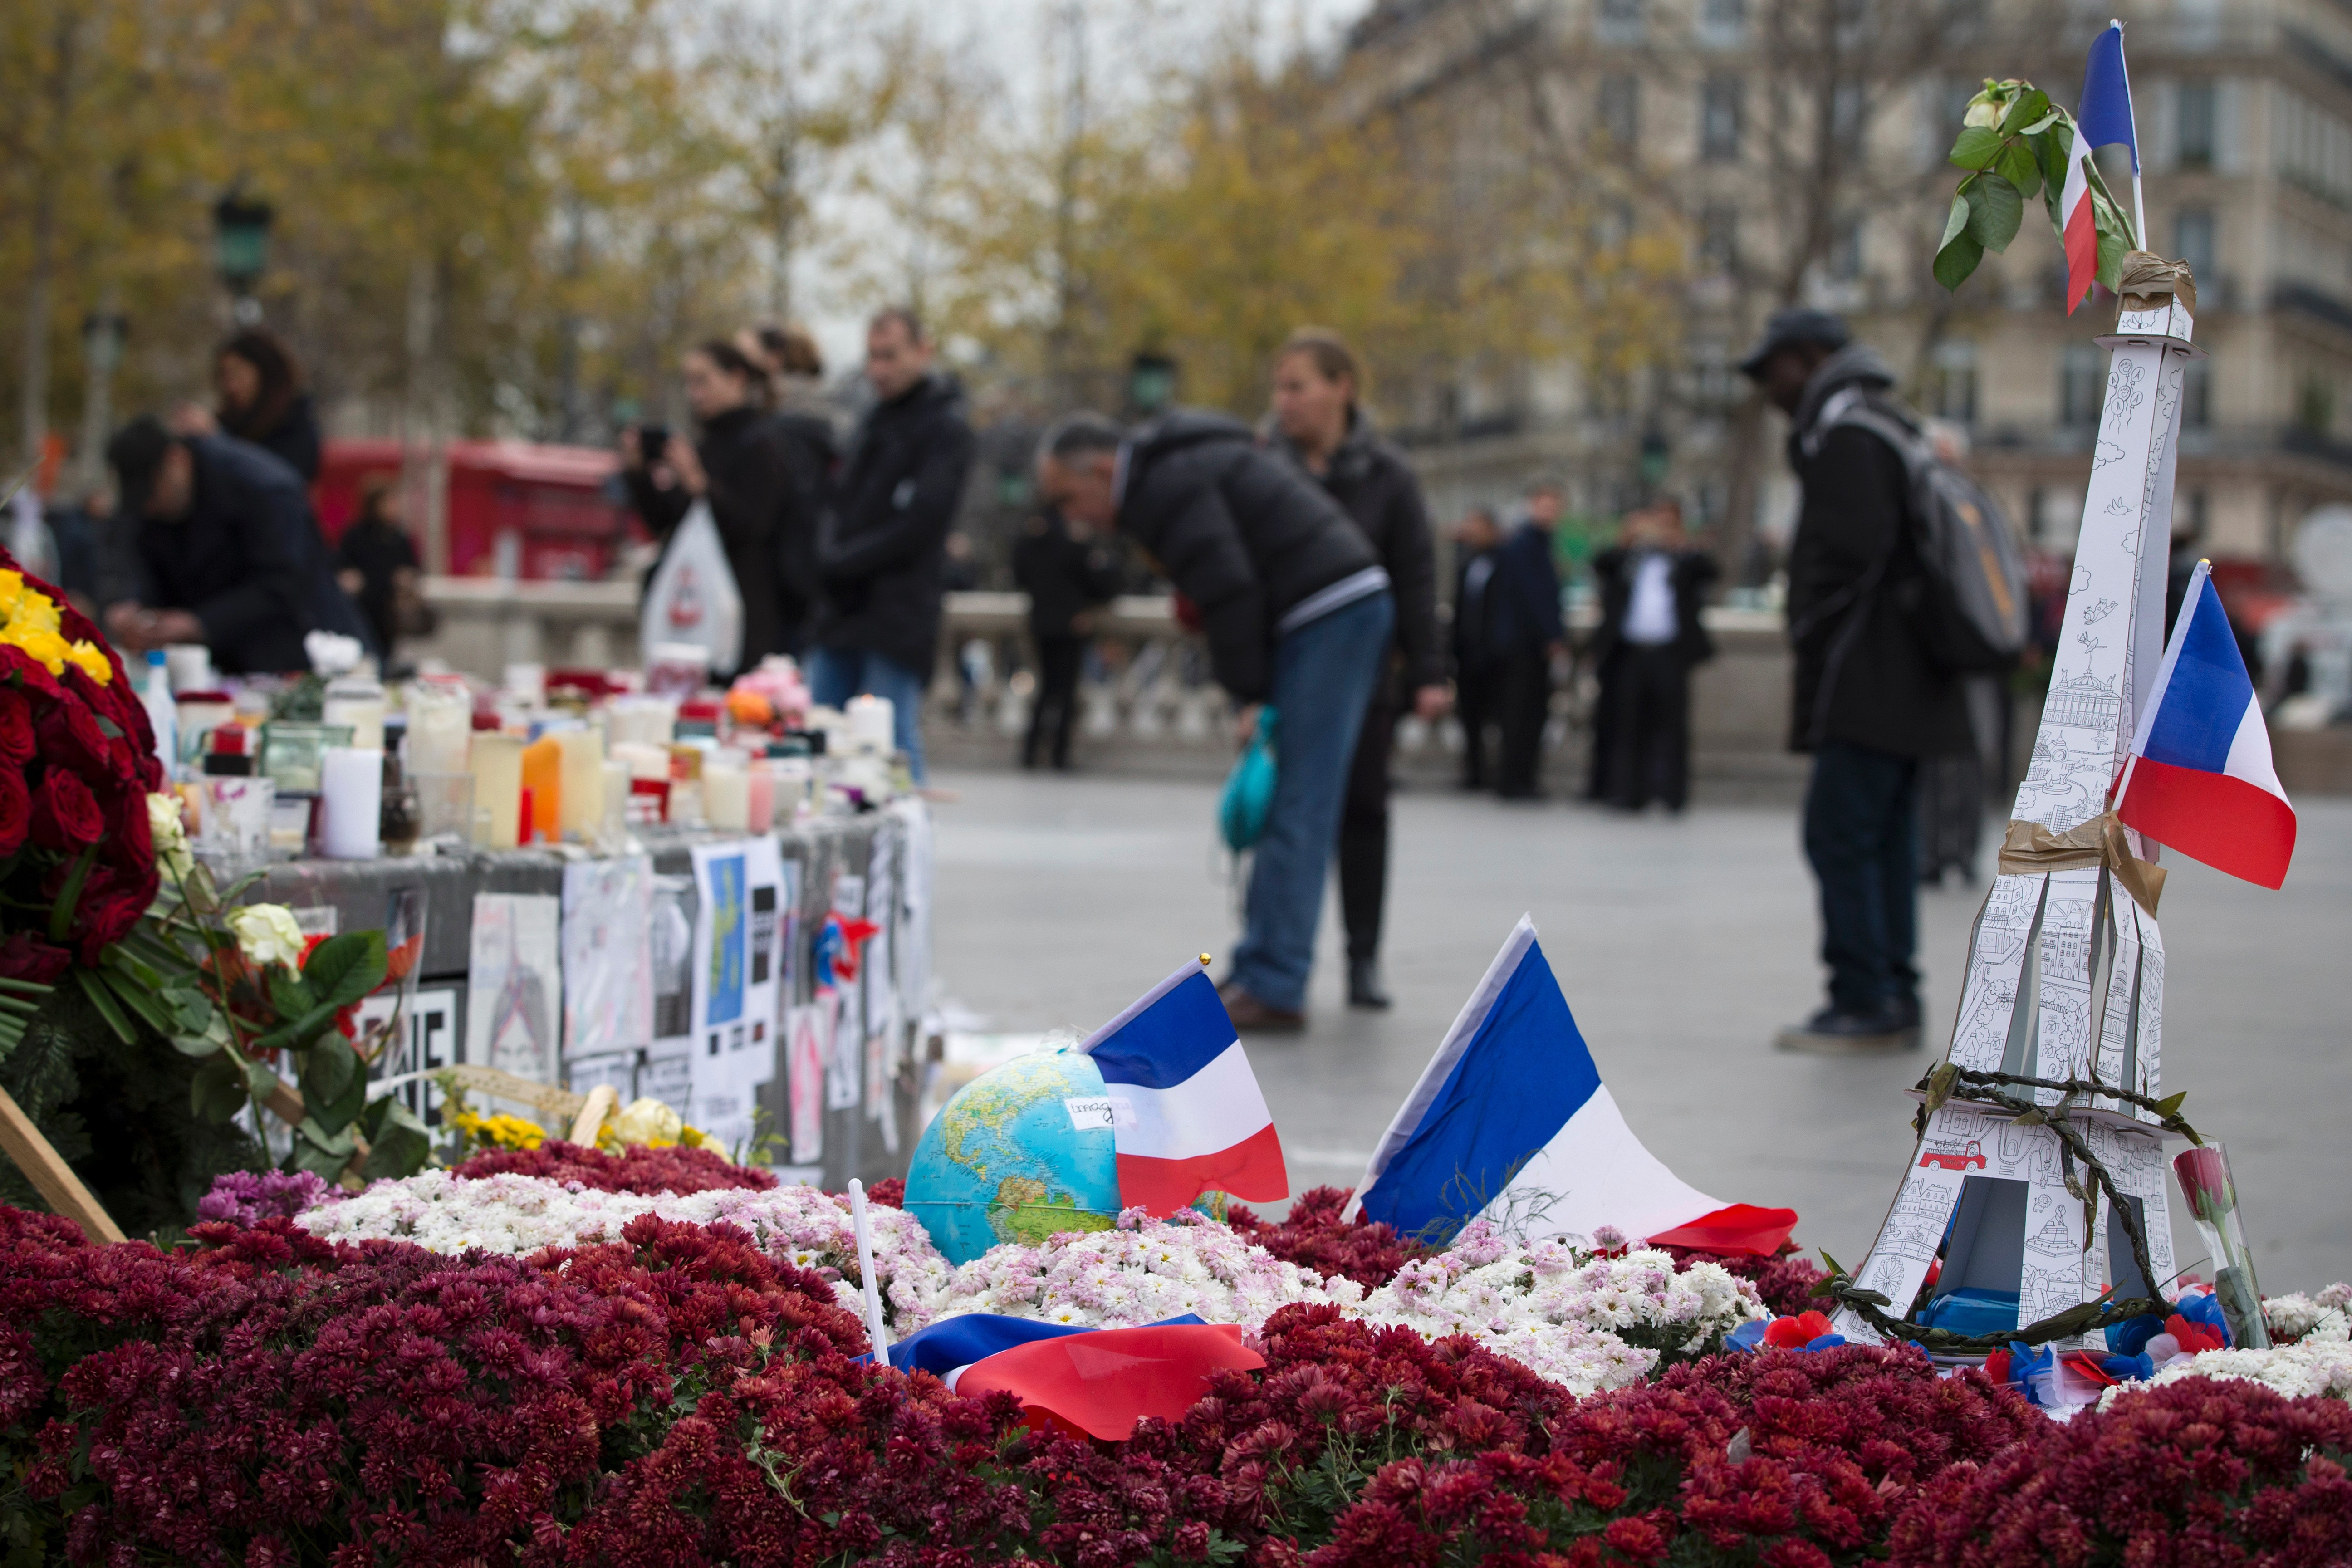 People stand on the Place de la Republique in Paris on December 2, 2015, next to a model Eiffel Tower, flowers and French flags layed in memory of the victims of the deadly attacks in and around Paris on Nov. 13.